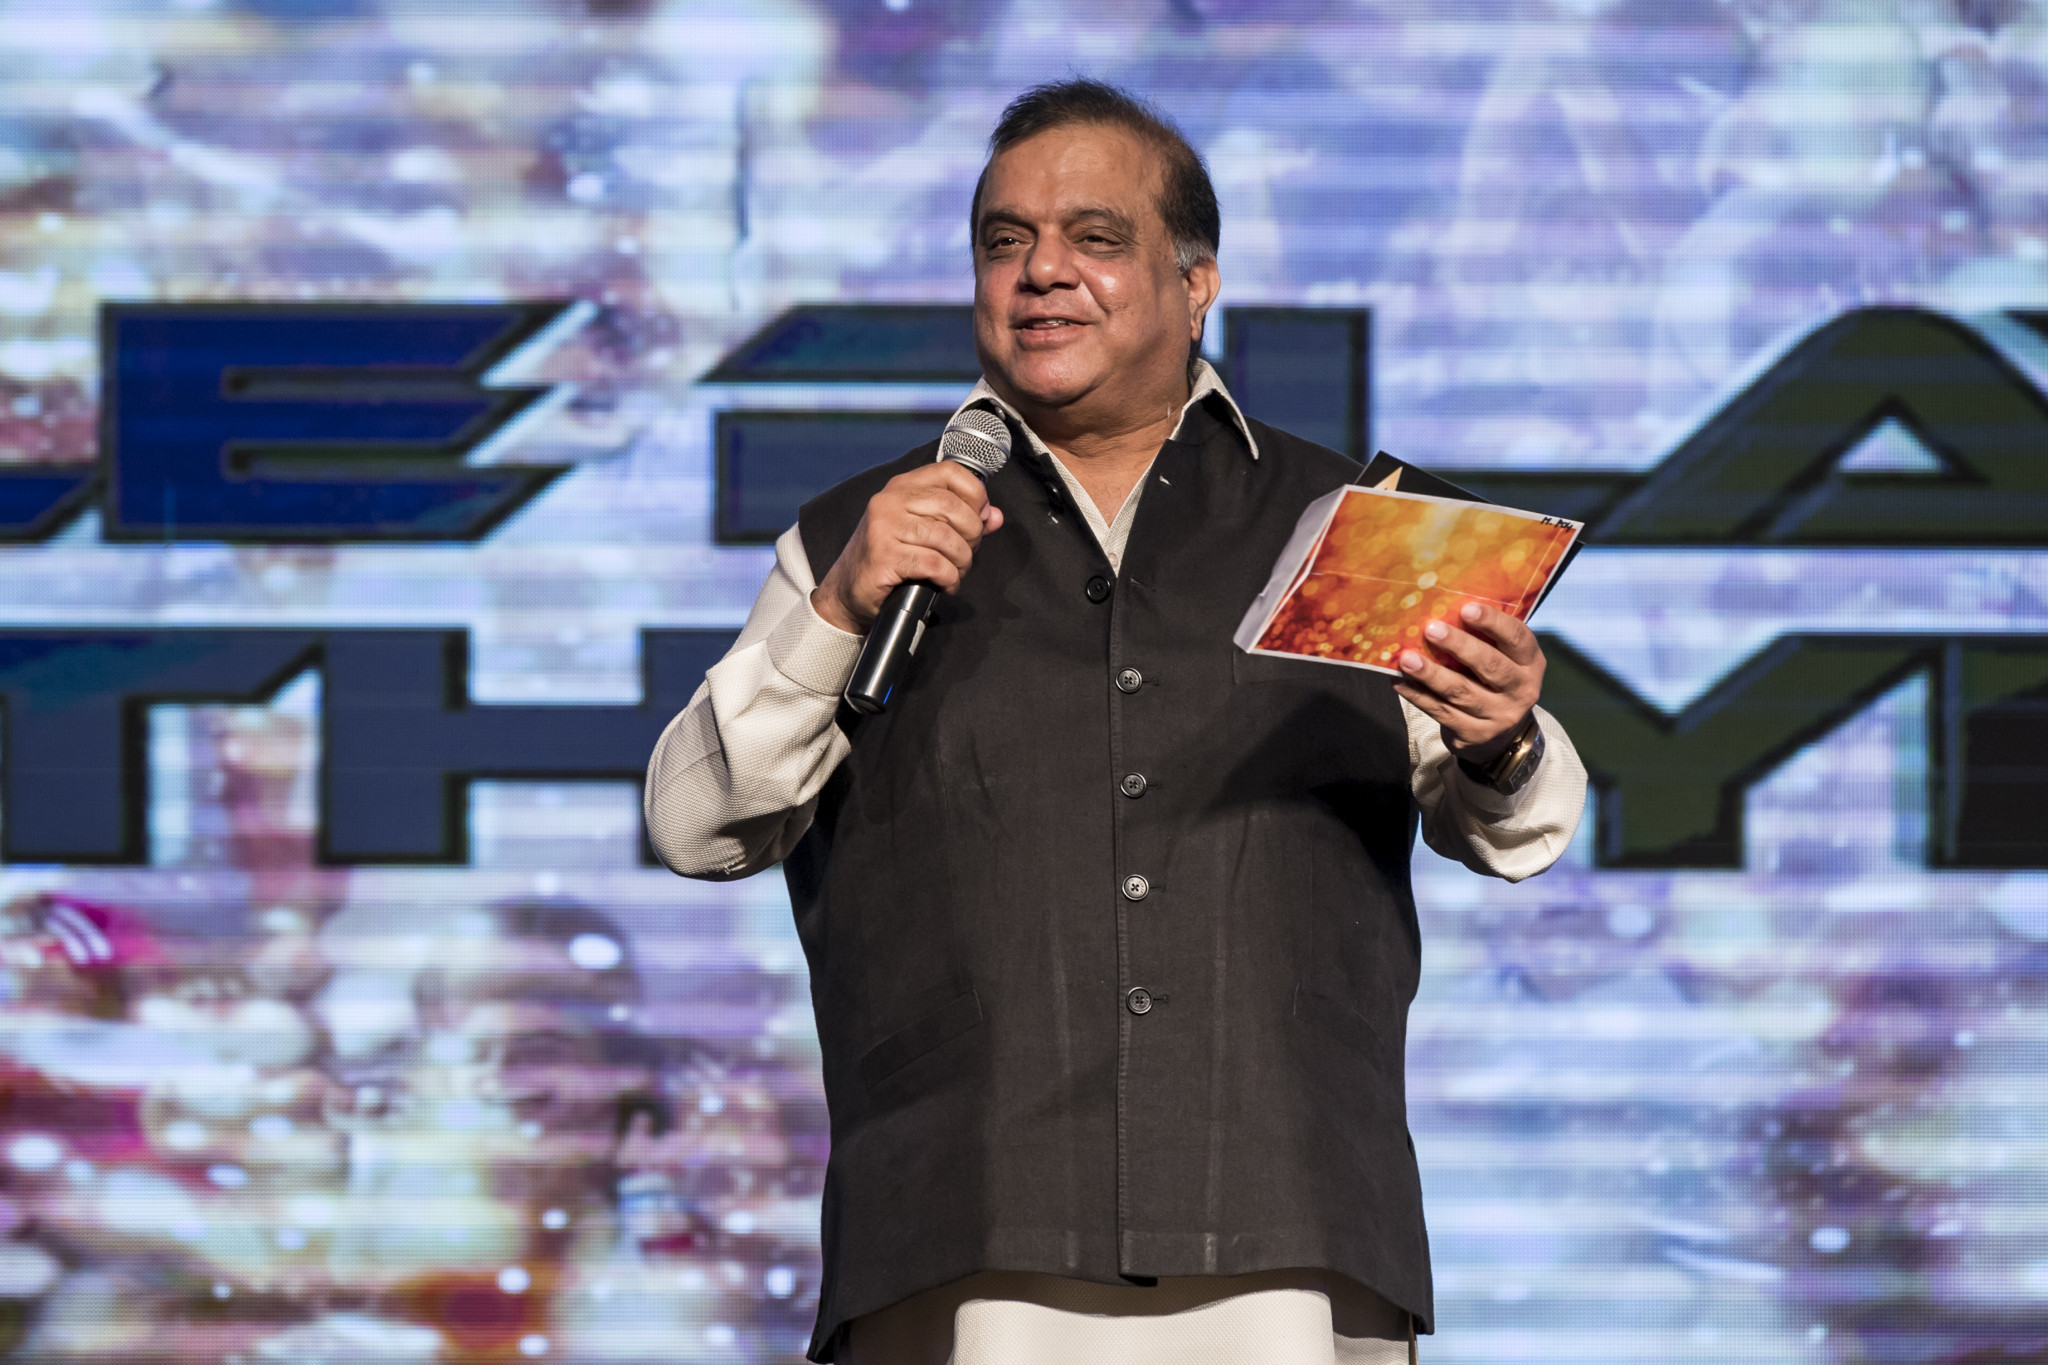 Batra re-elected FIH President after beating Coudron by two votes